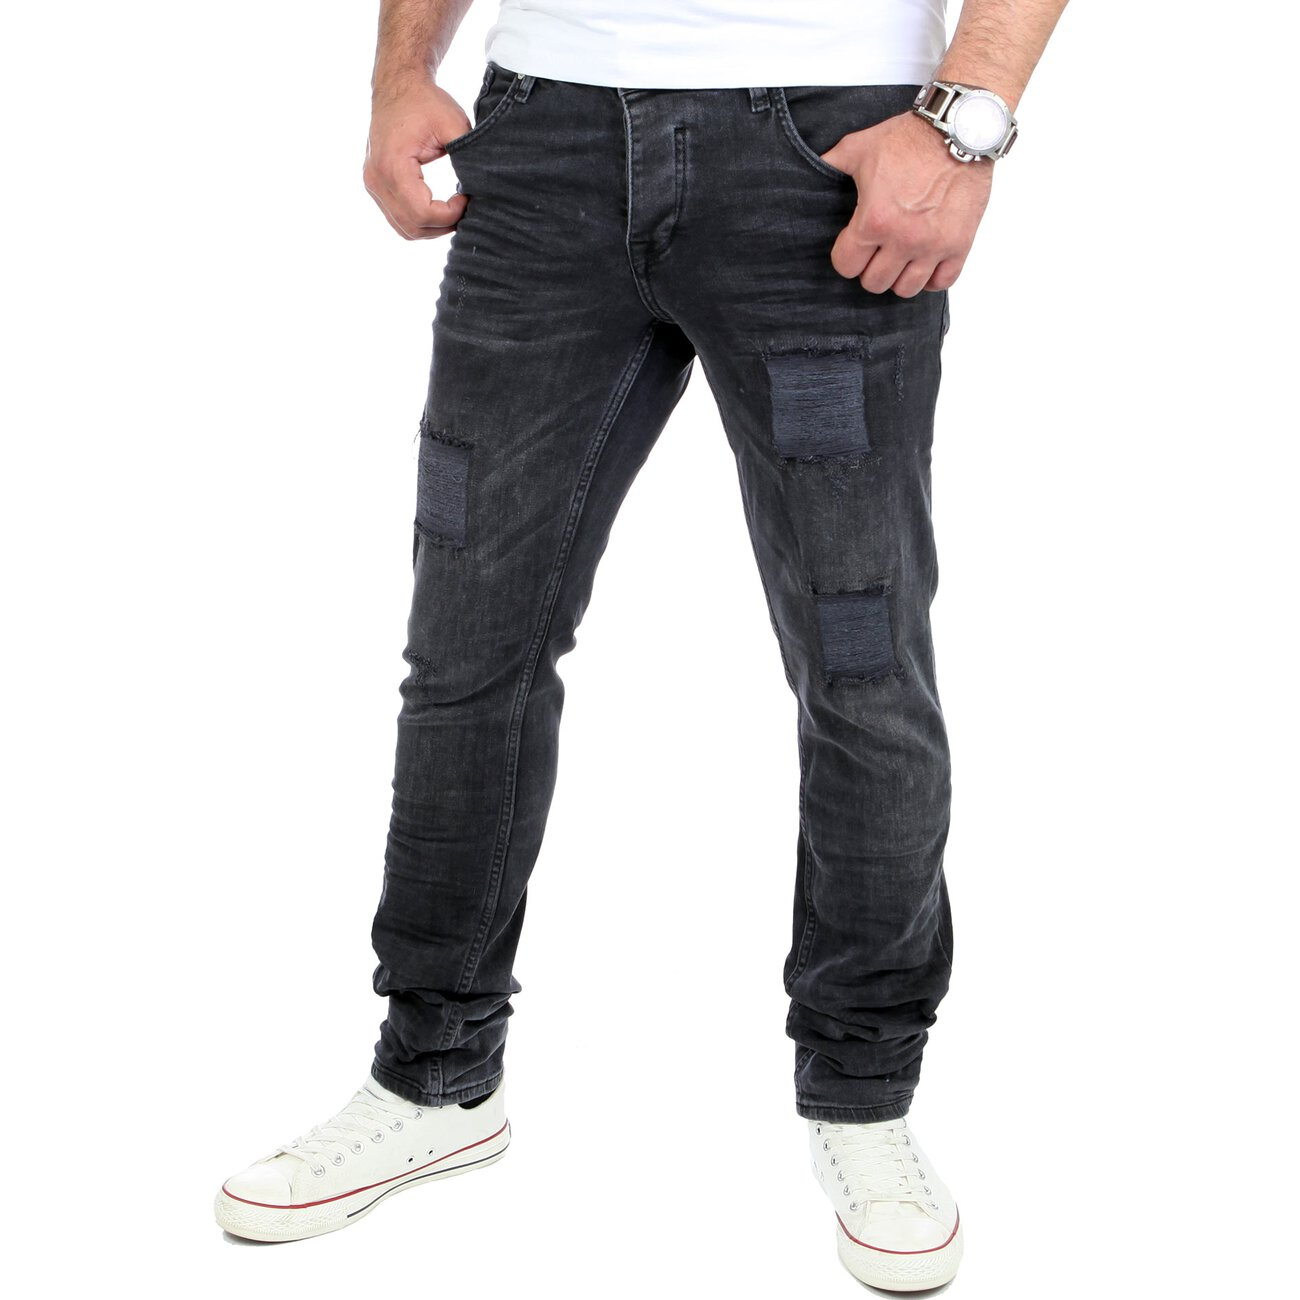 reslad herren jeans destroyed look slim fit denim jeans hose. Black Bedroom Furniture Sets. Home Design Ideas